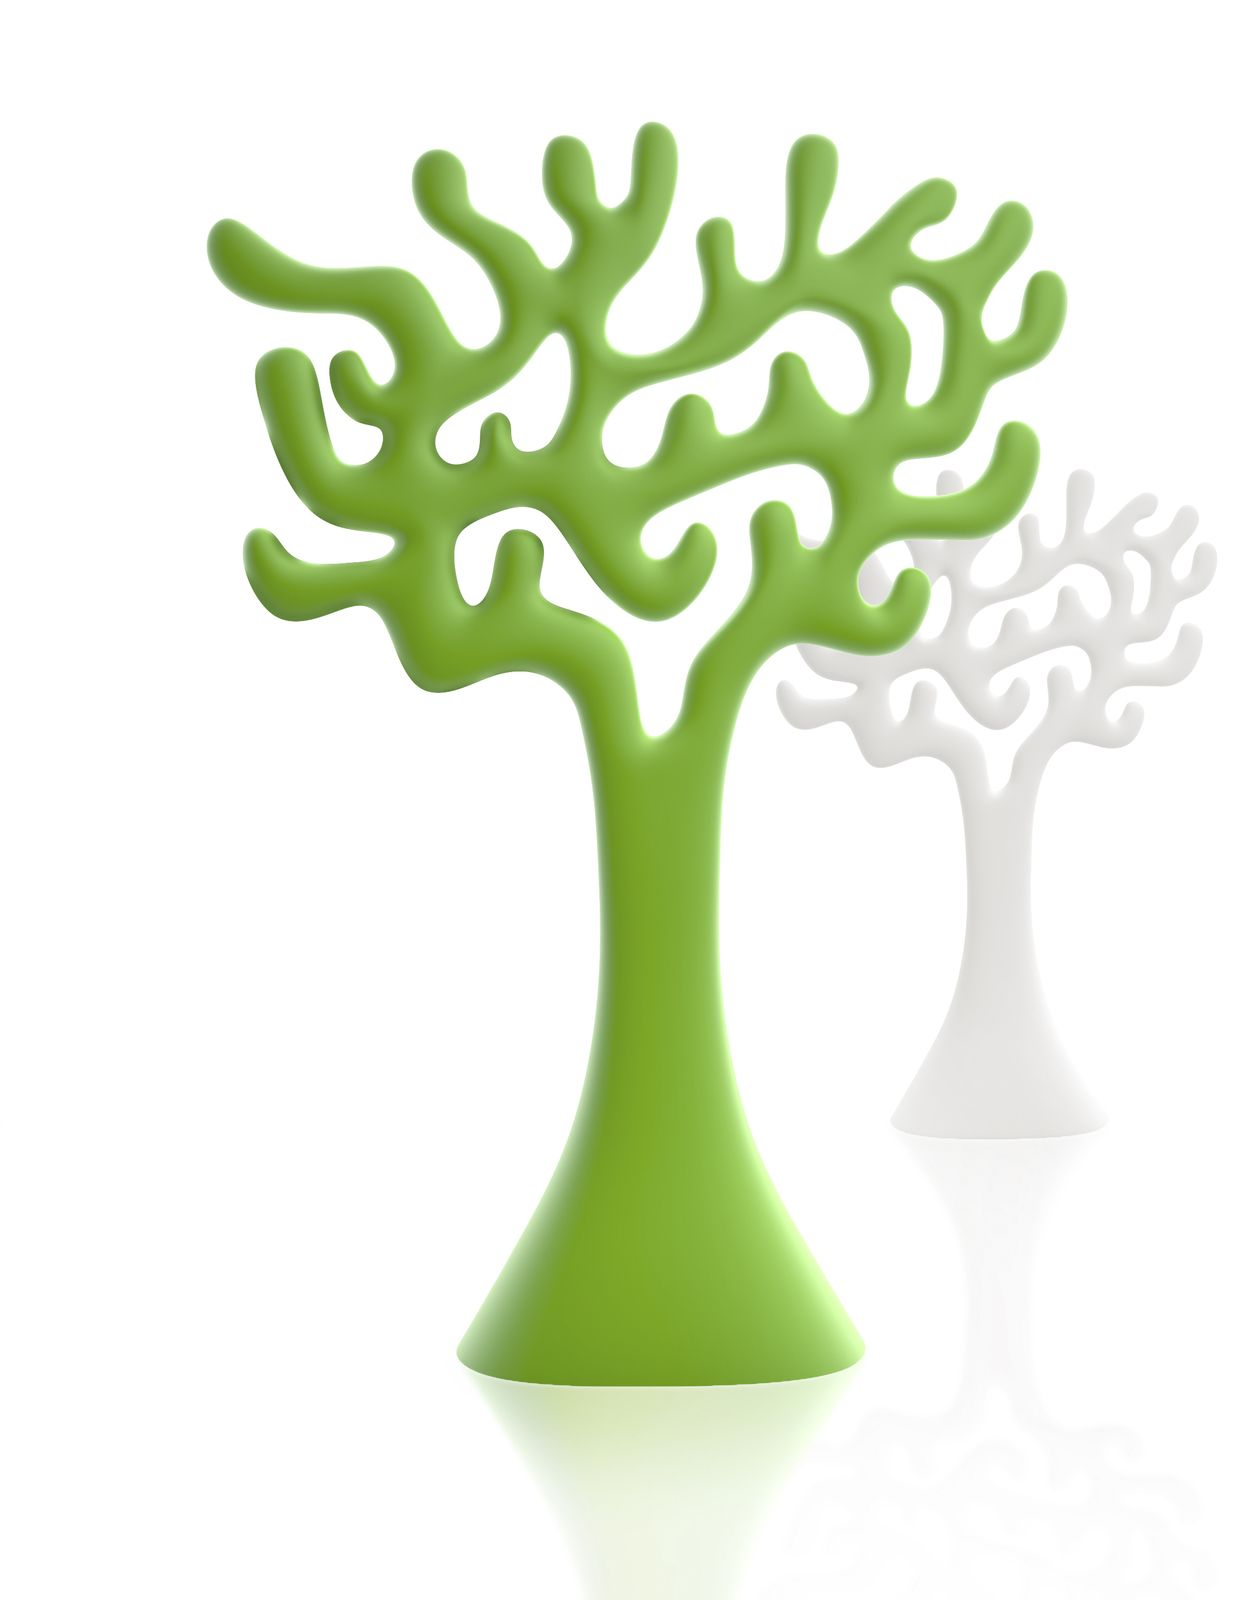 the tree can be used singly or in groups as a space divider and